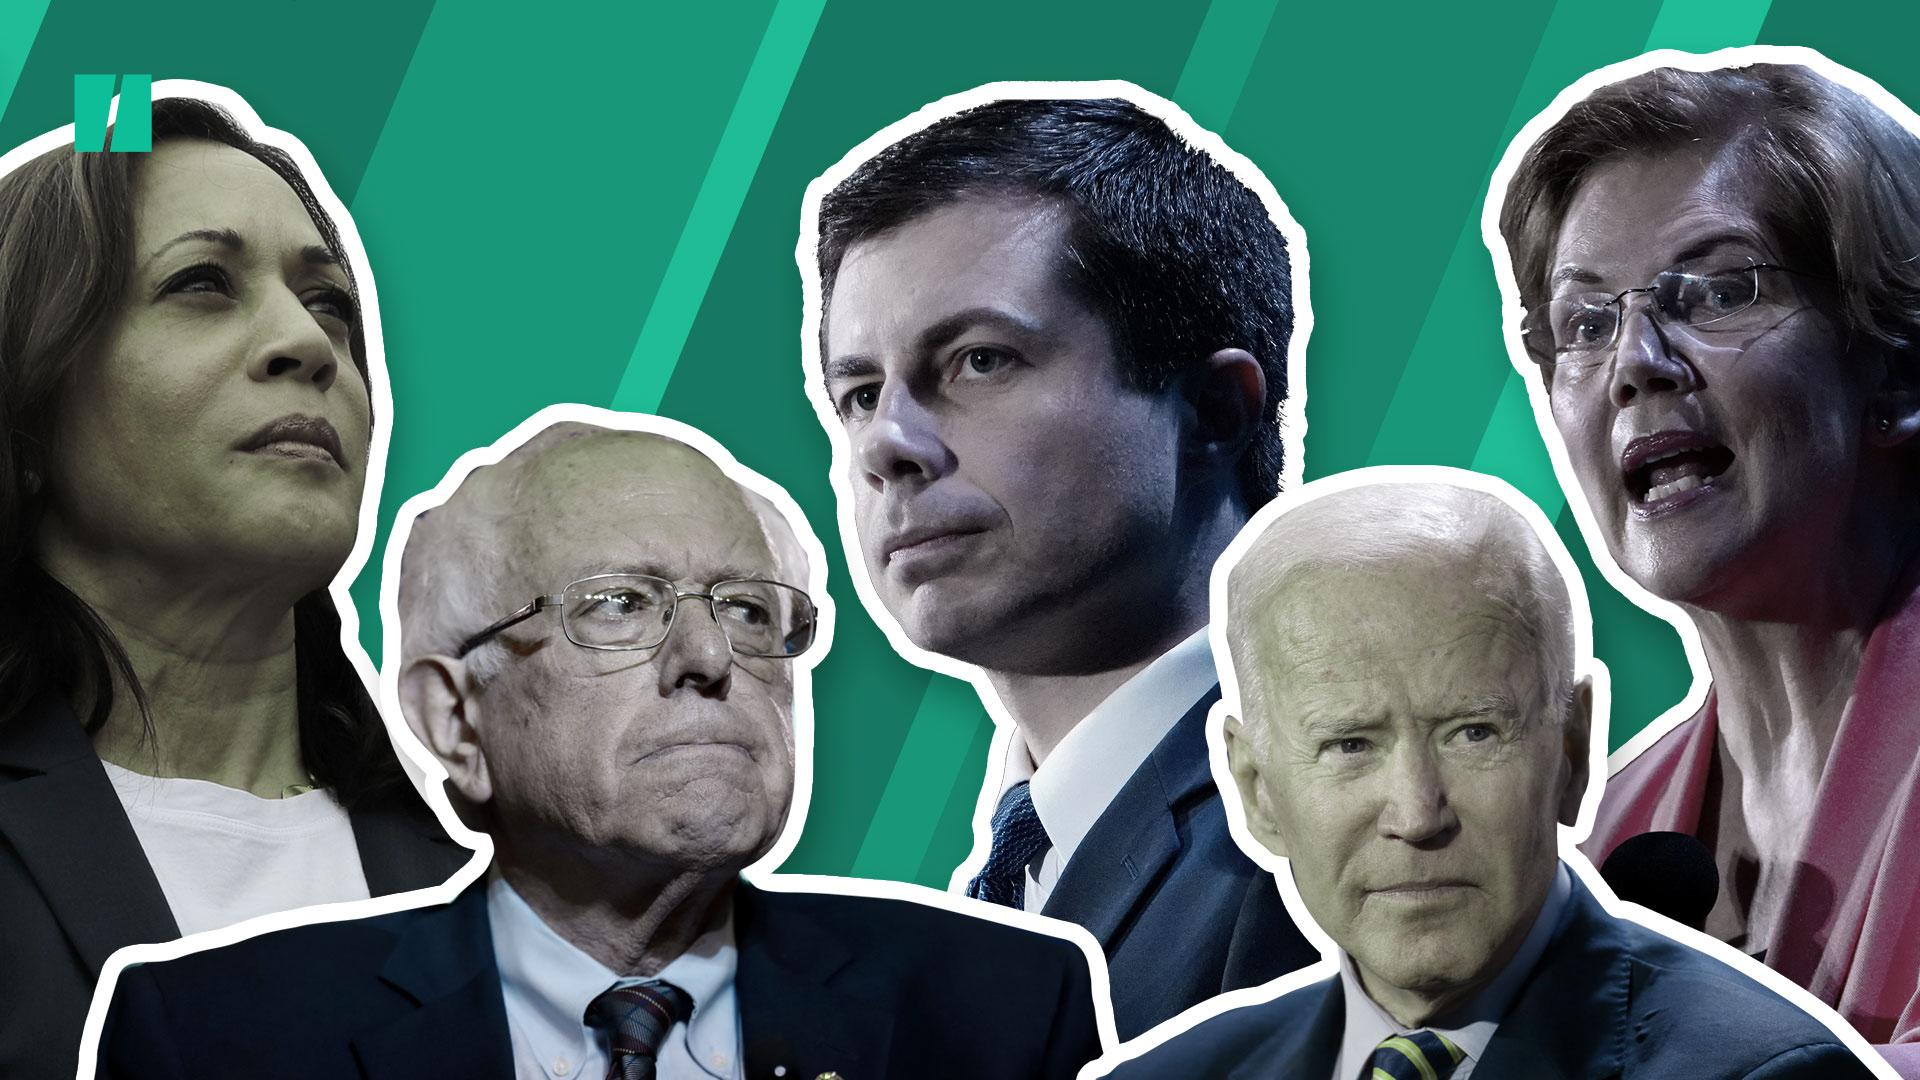 Who Are The Democratic Party Candidates Hoping To Run In 2020?